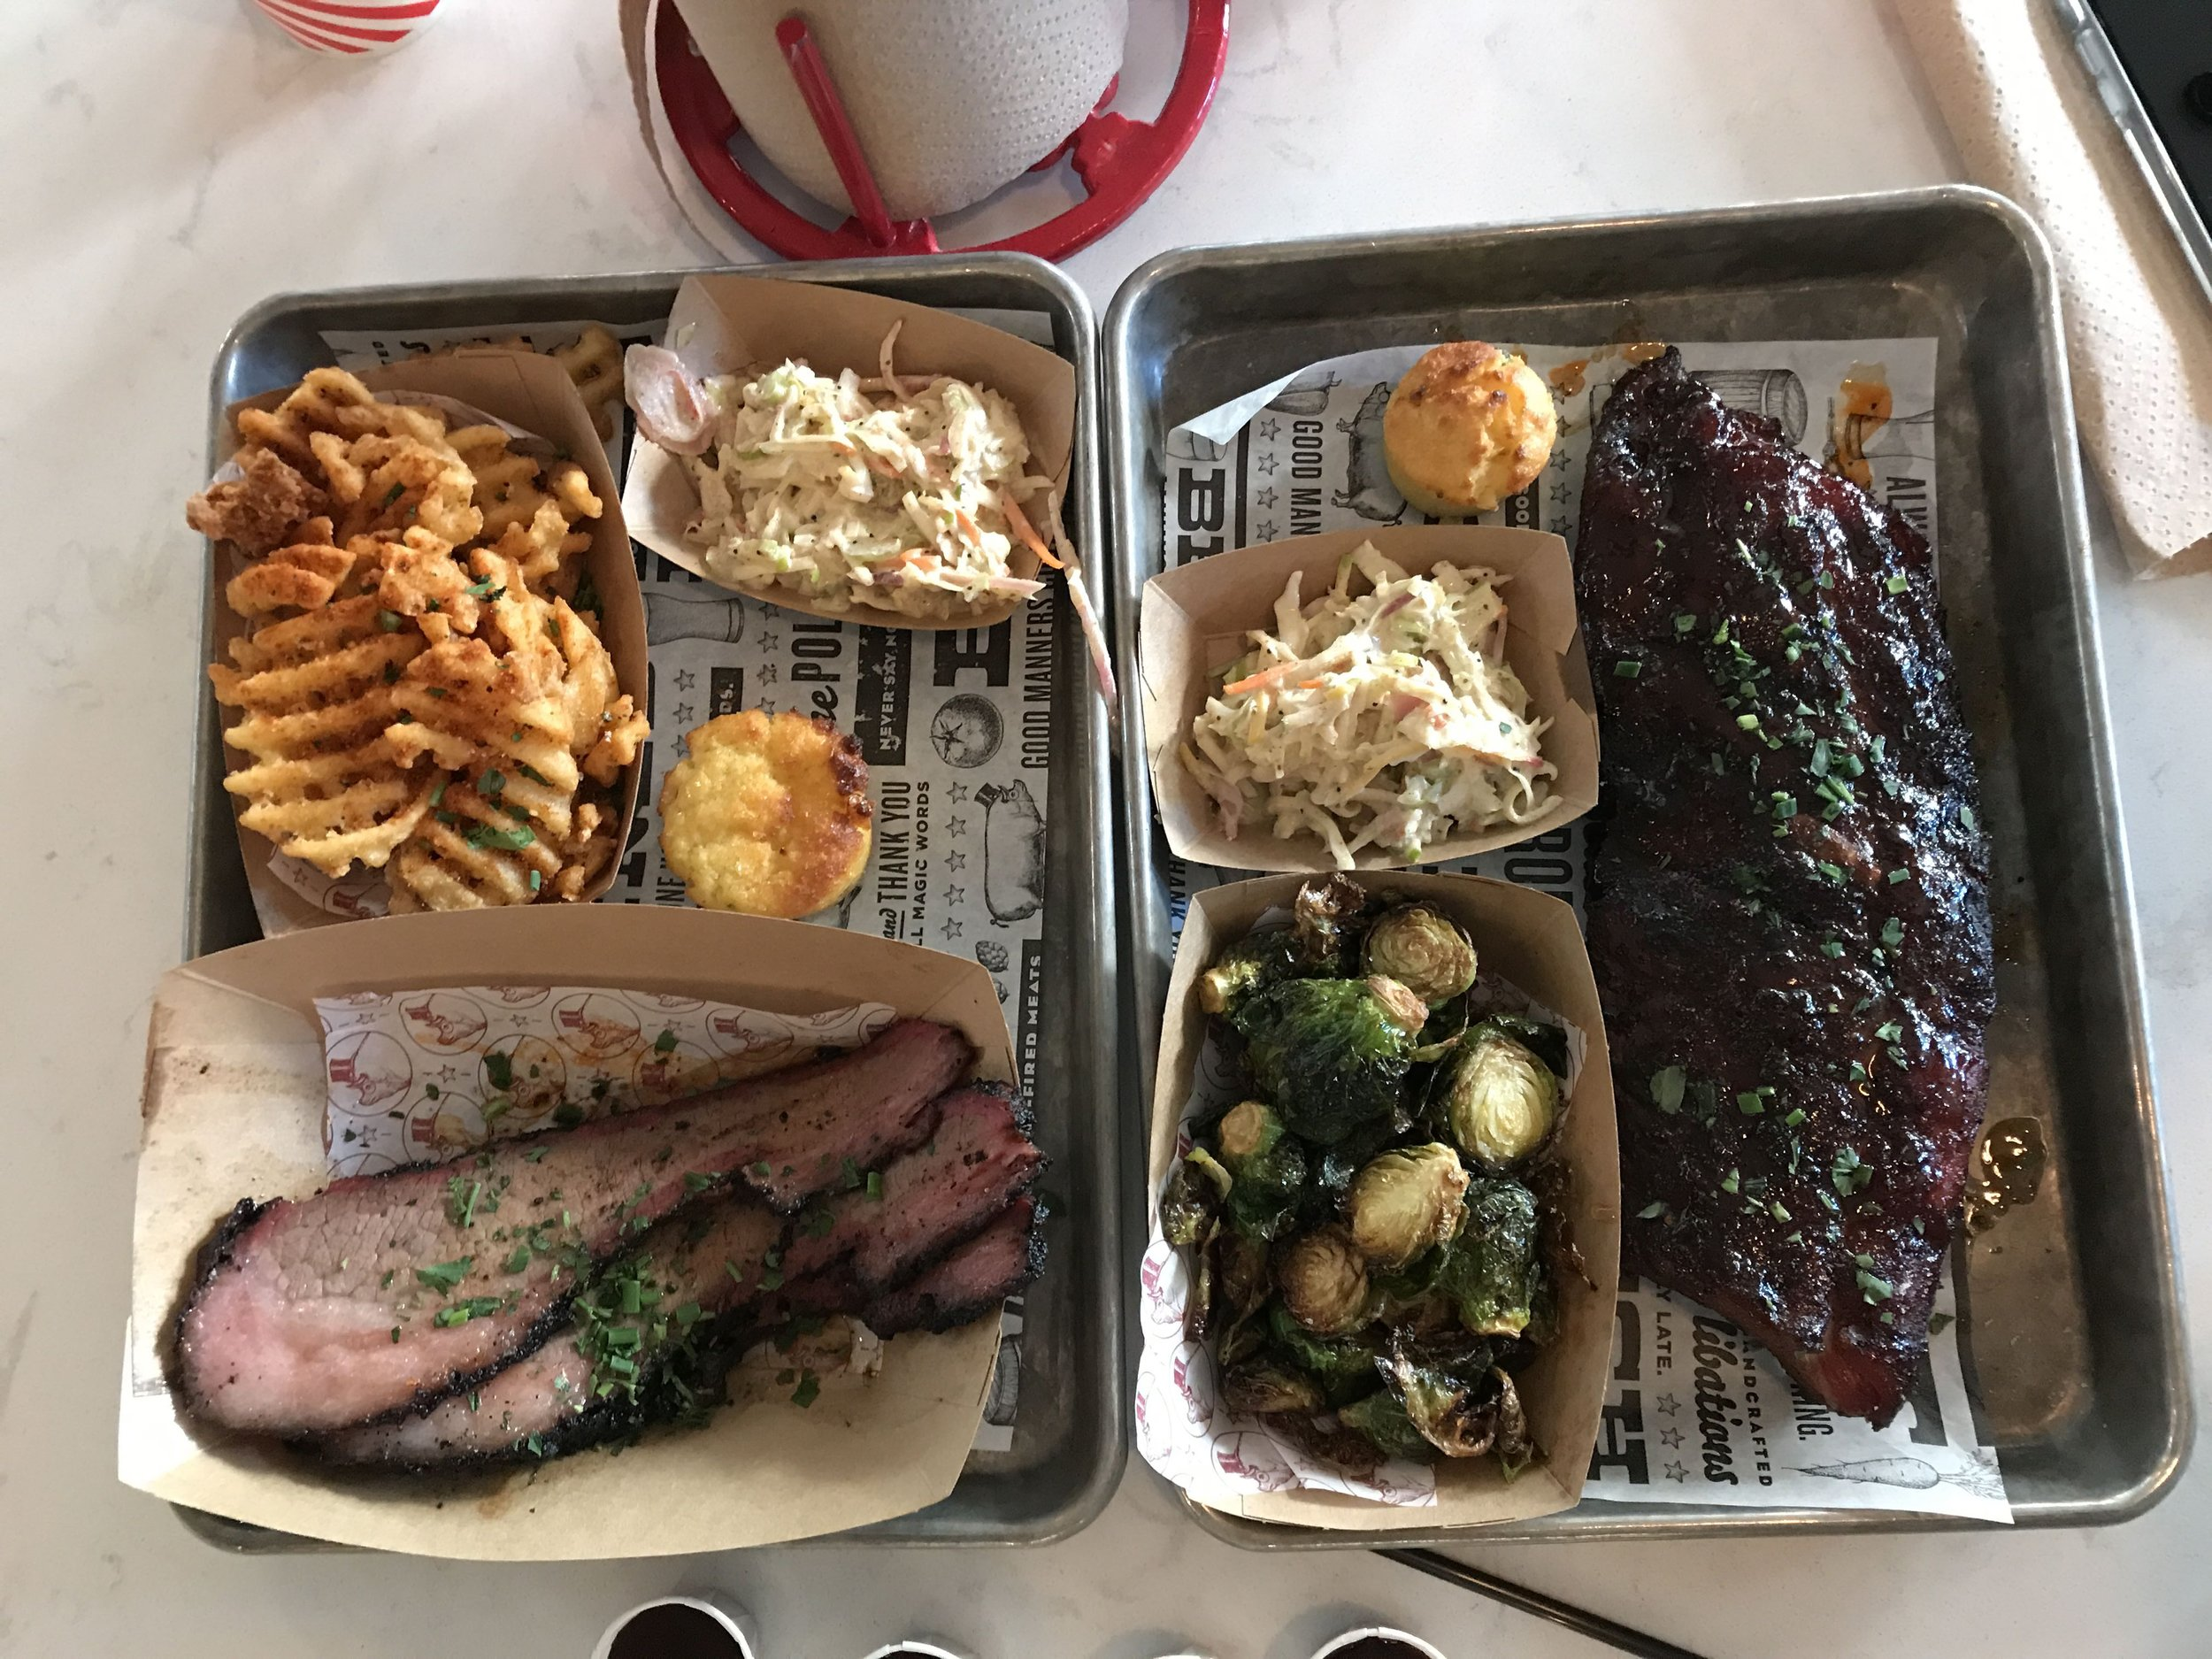 Our meal at Polite Pig. The Brisket and Ribs plate. Each plate is 1 quick service credit on the dining plan.